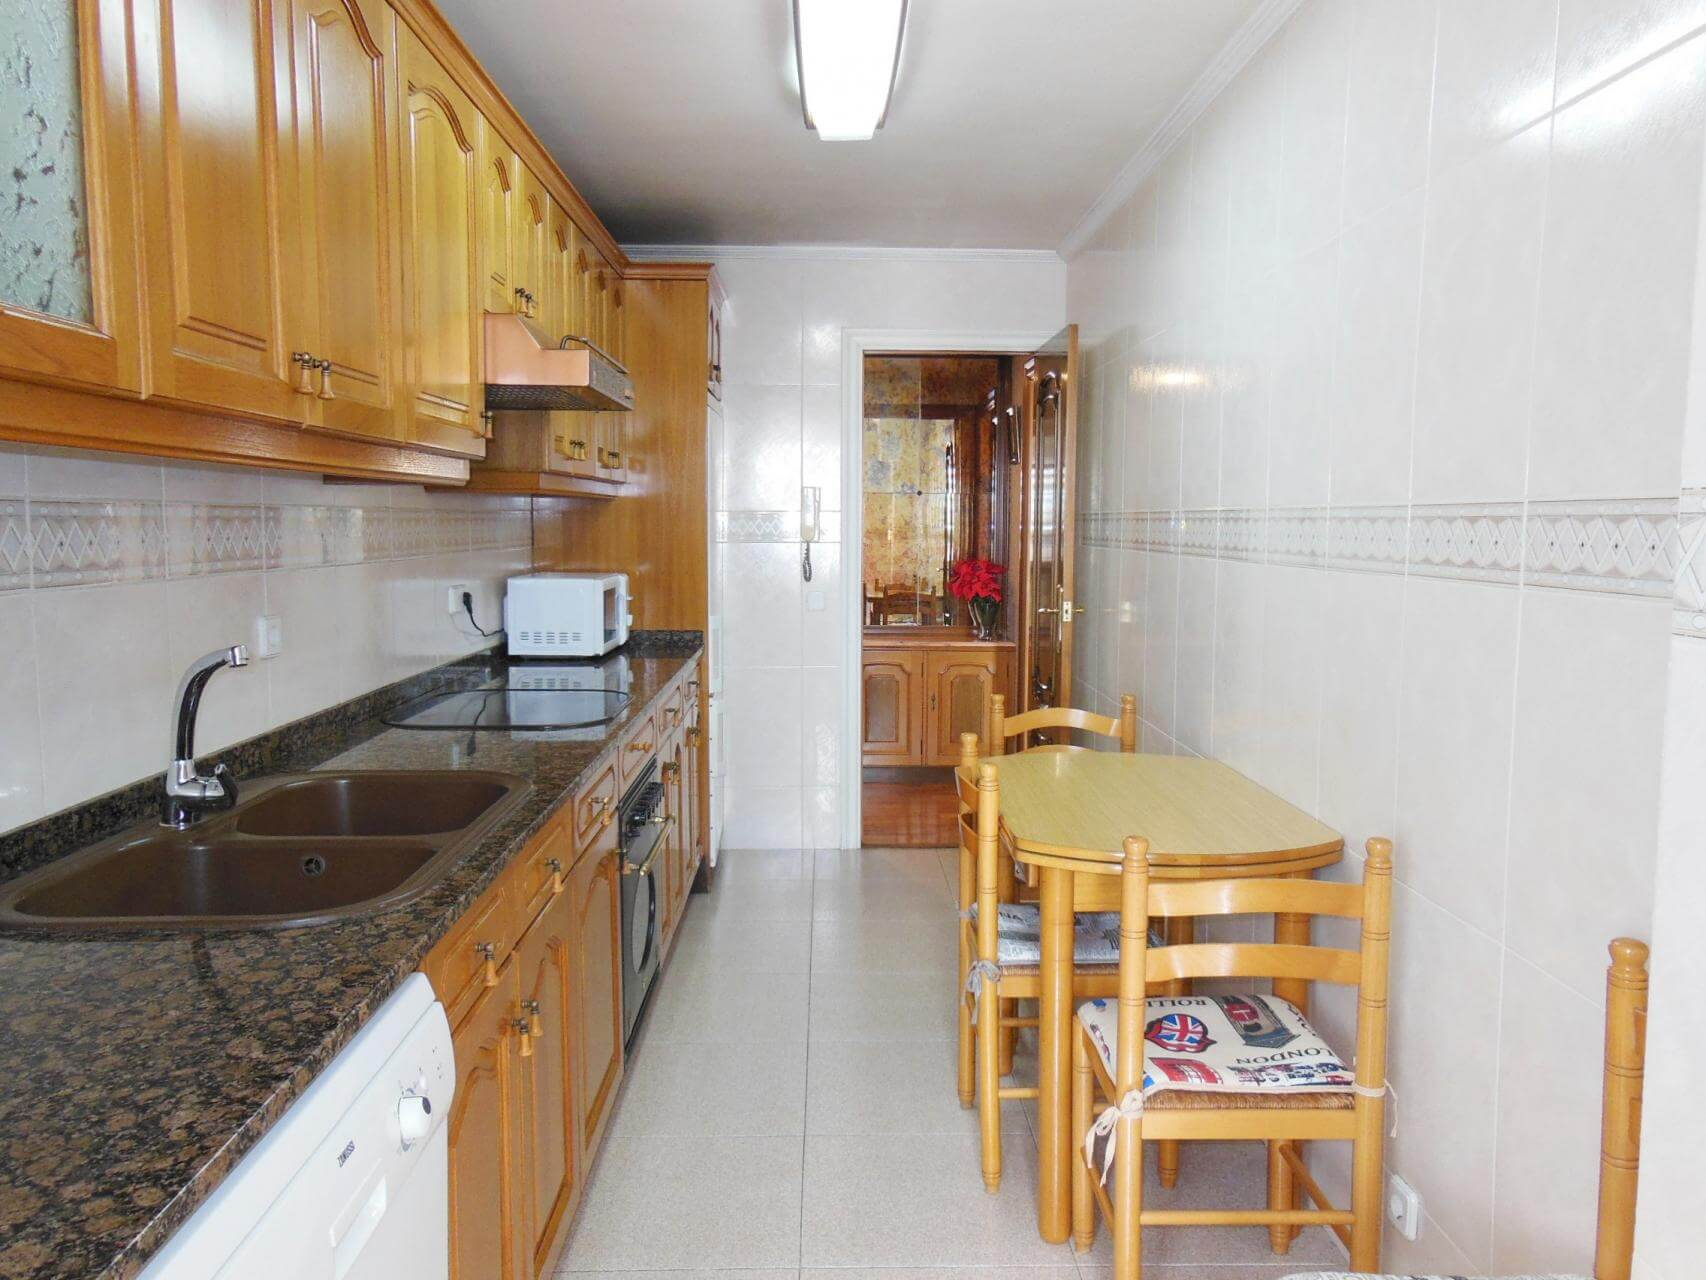 Piso en alquiler barcelona les corts cardenal reig for Piso alquiler les corts